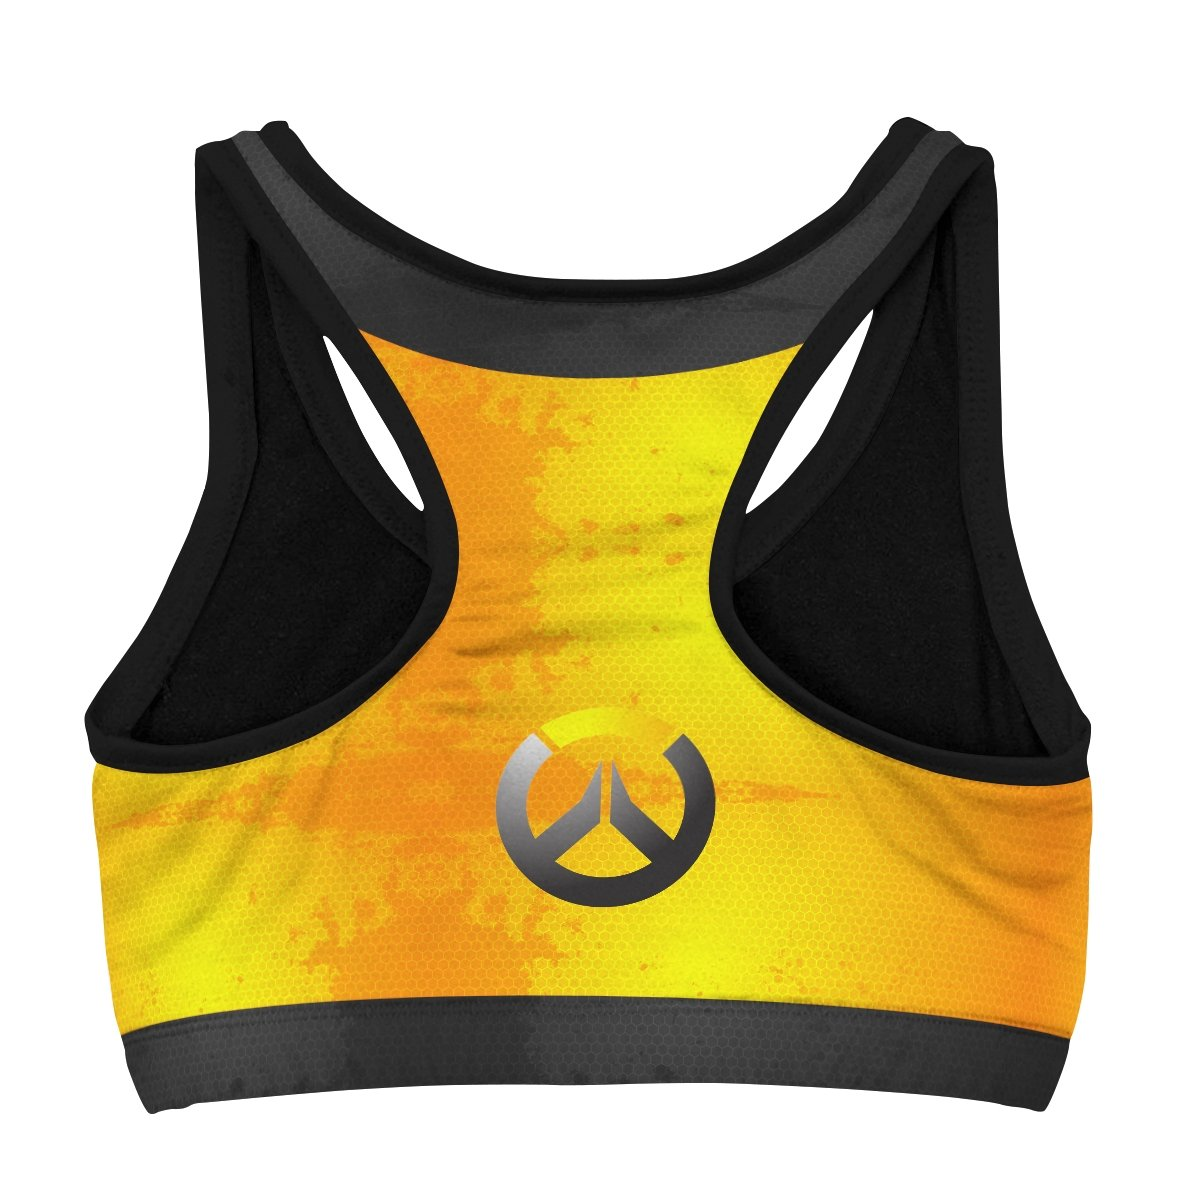 tracer summer active wear set 689502 - Anime Swimsuits